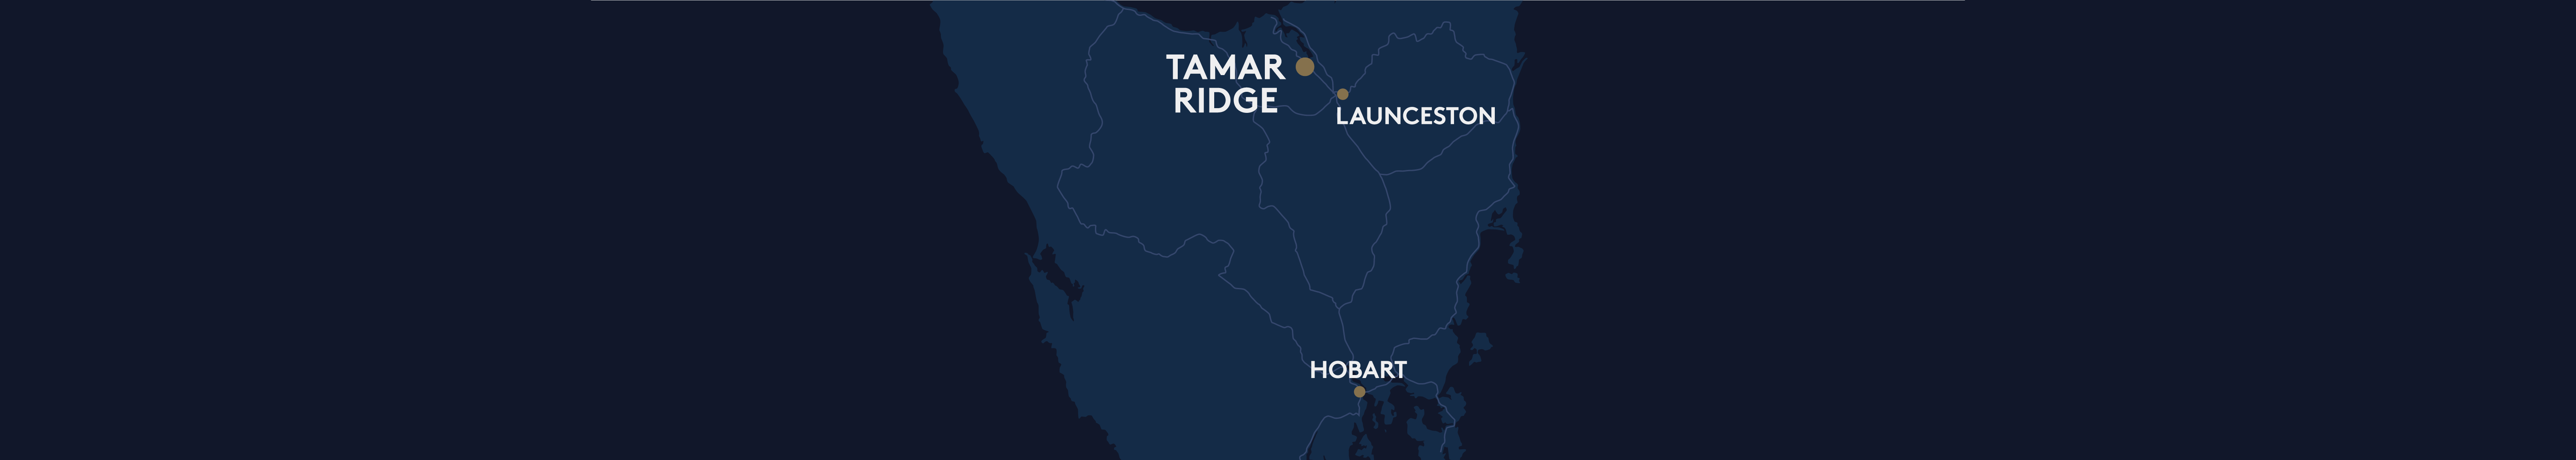 Tamar Ridge location map